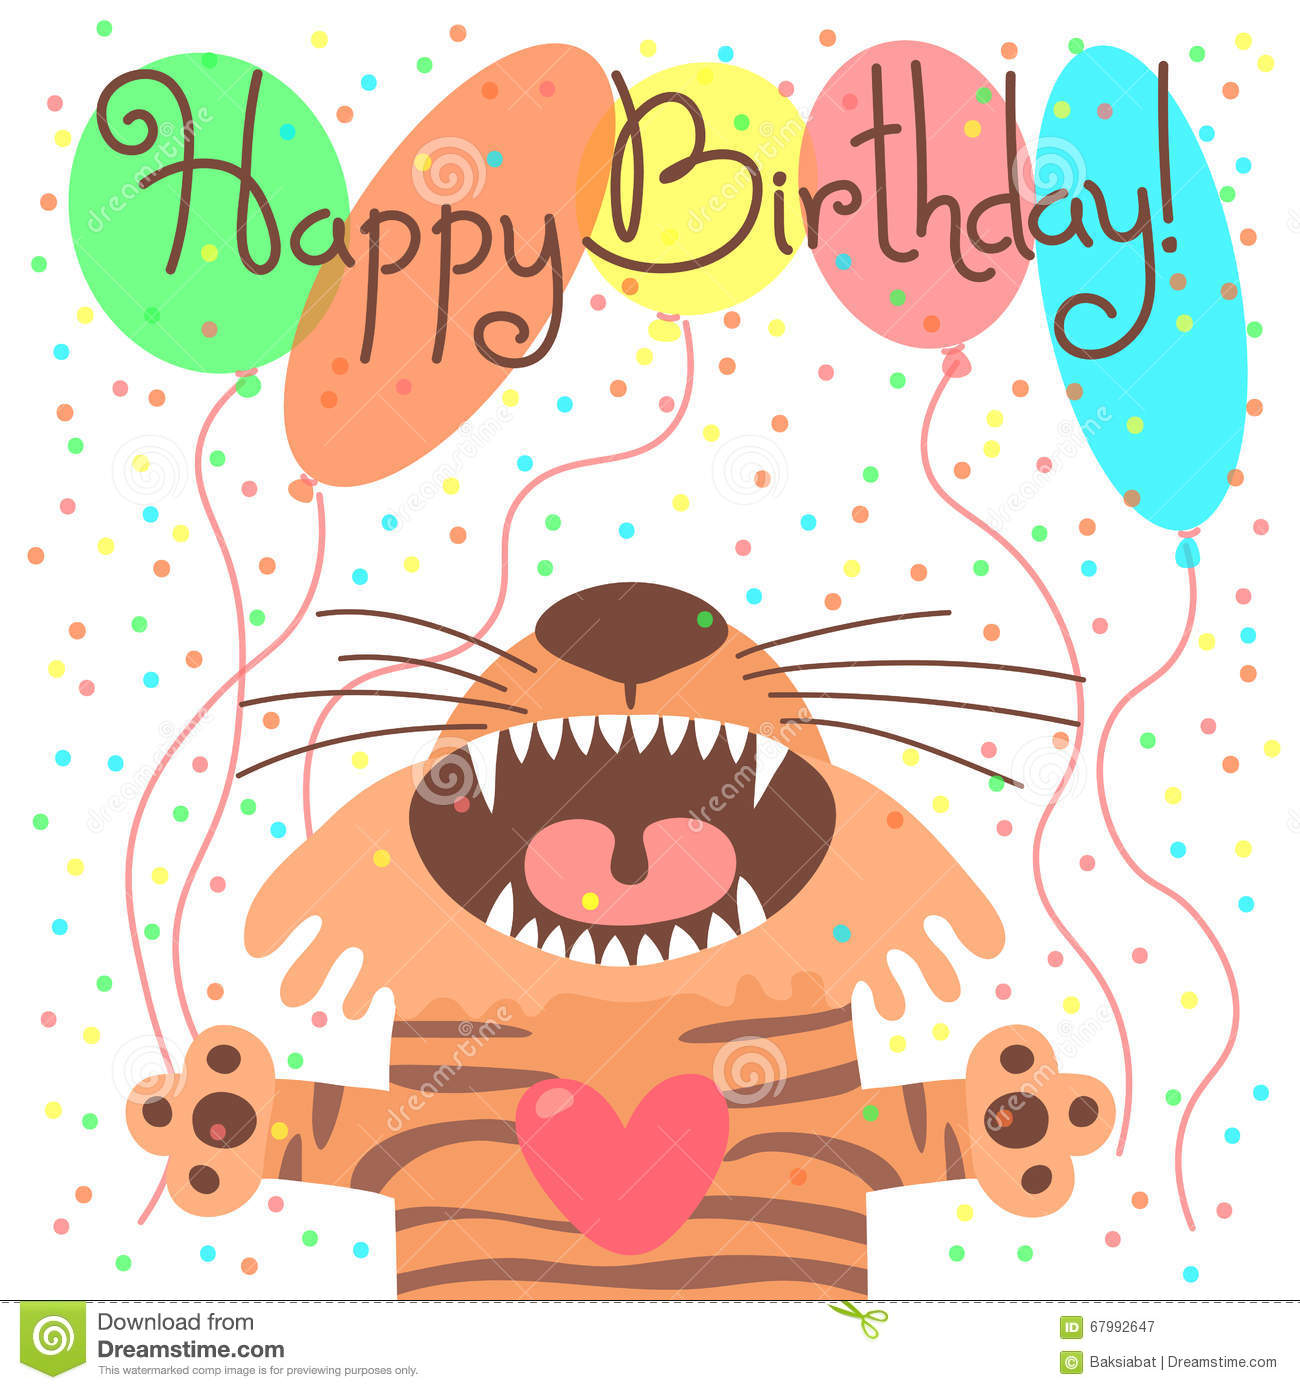 Cute happy birthday card with funny tiger.